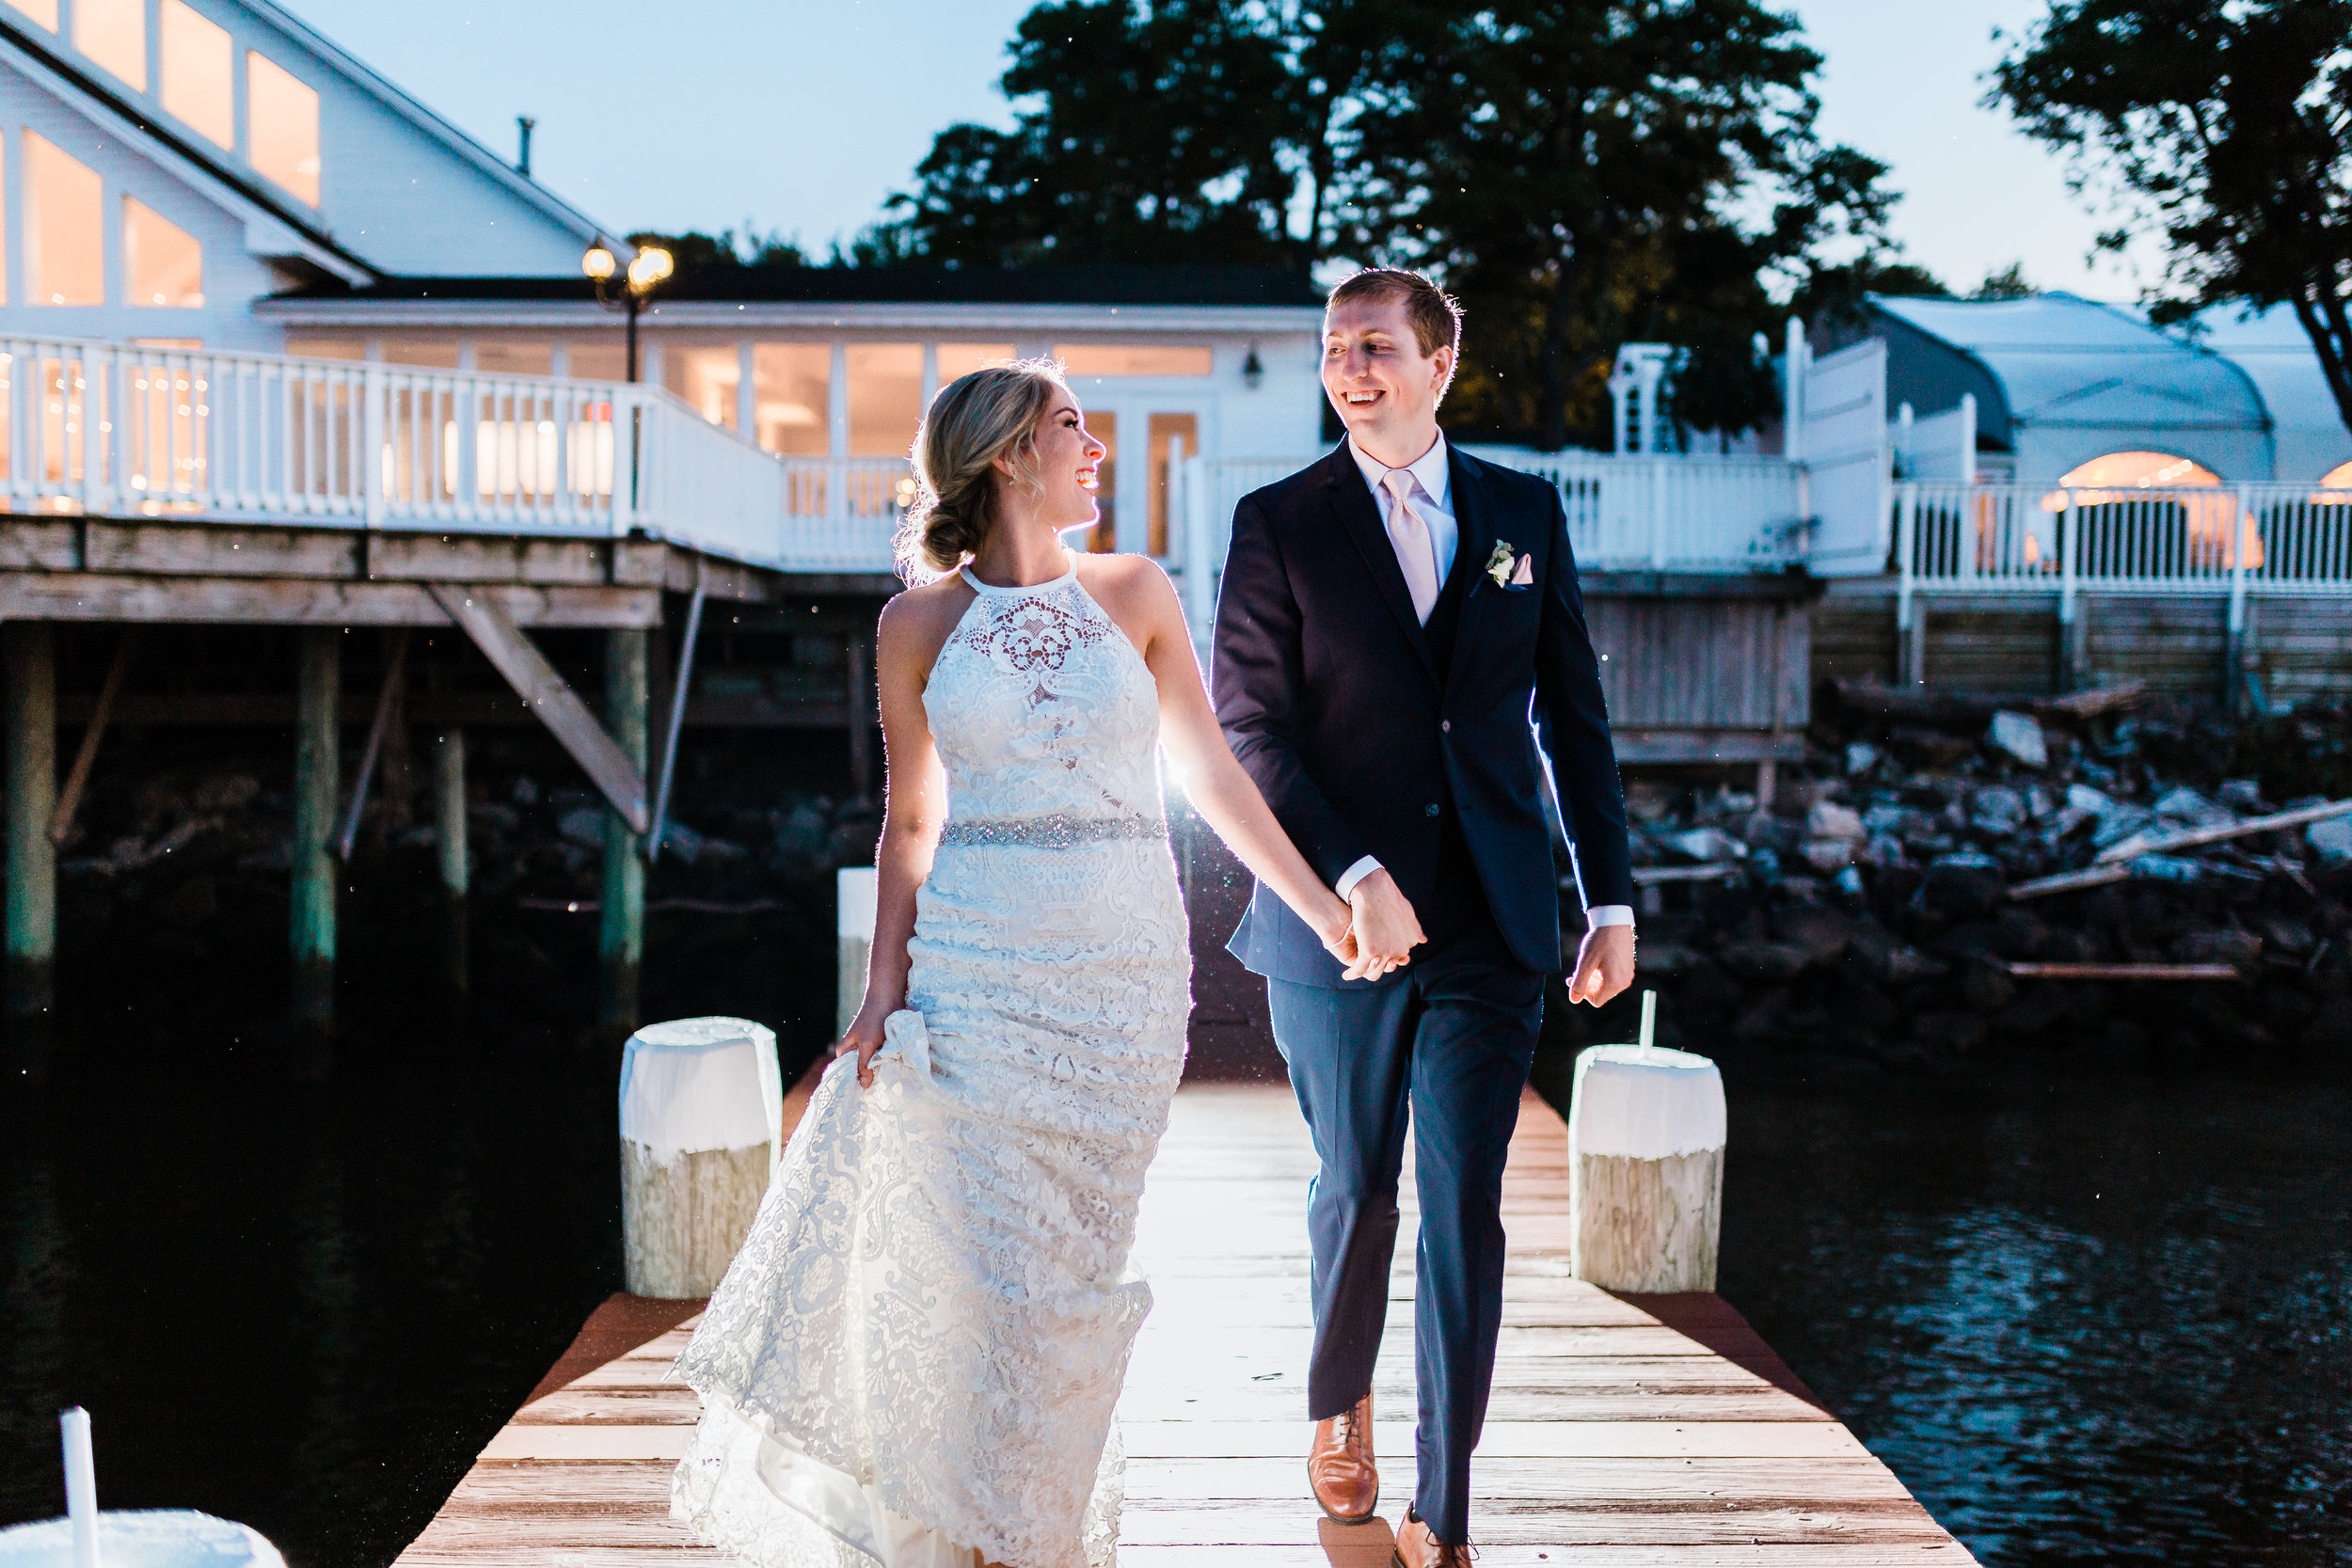 bride and groom running and laughing together - celebrations at the bay - best maryland wedding photographer